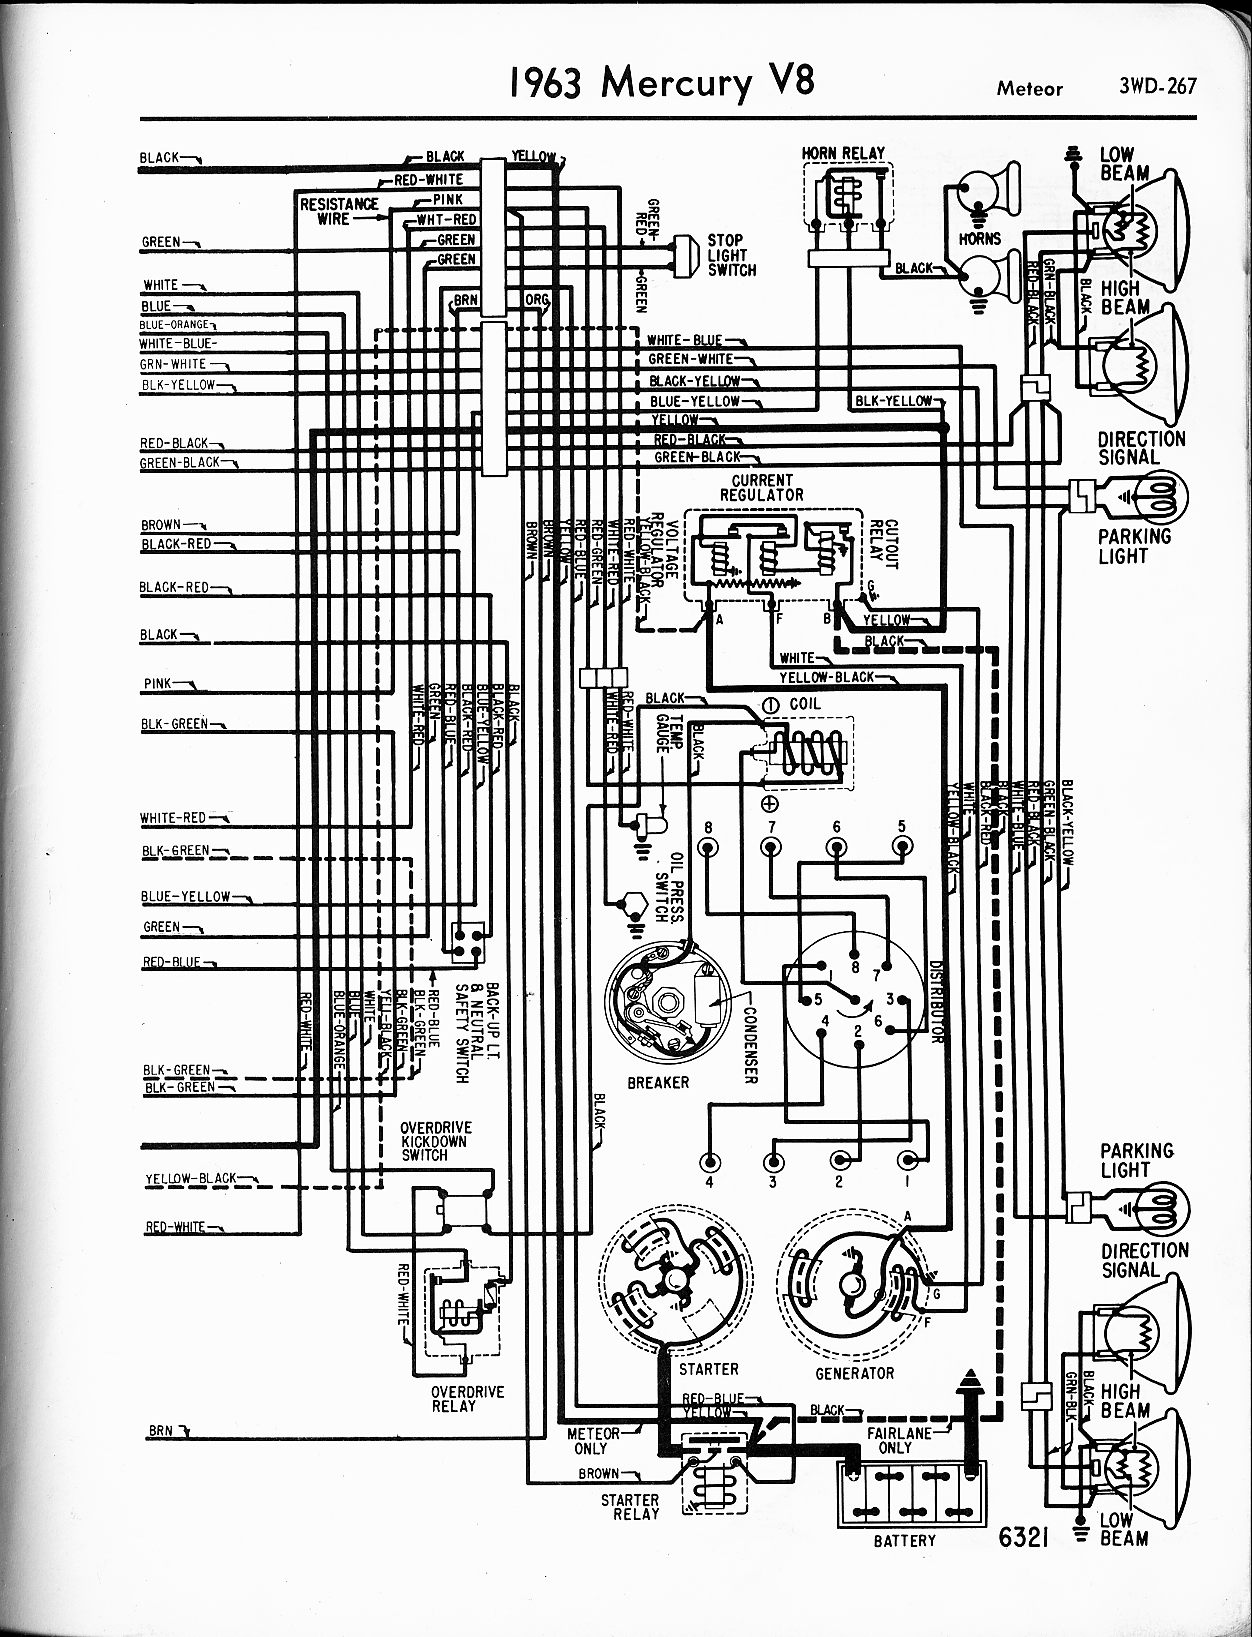 mercury wiring diagrams the old car manual project Ford F-150 Starter Diagram 1963 v8 meteor right page